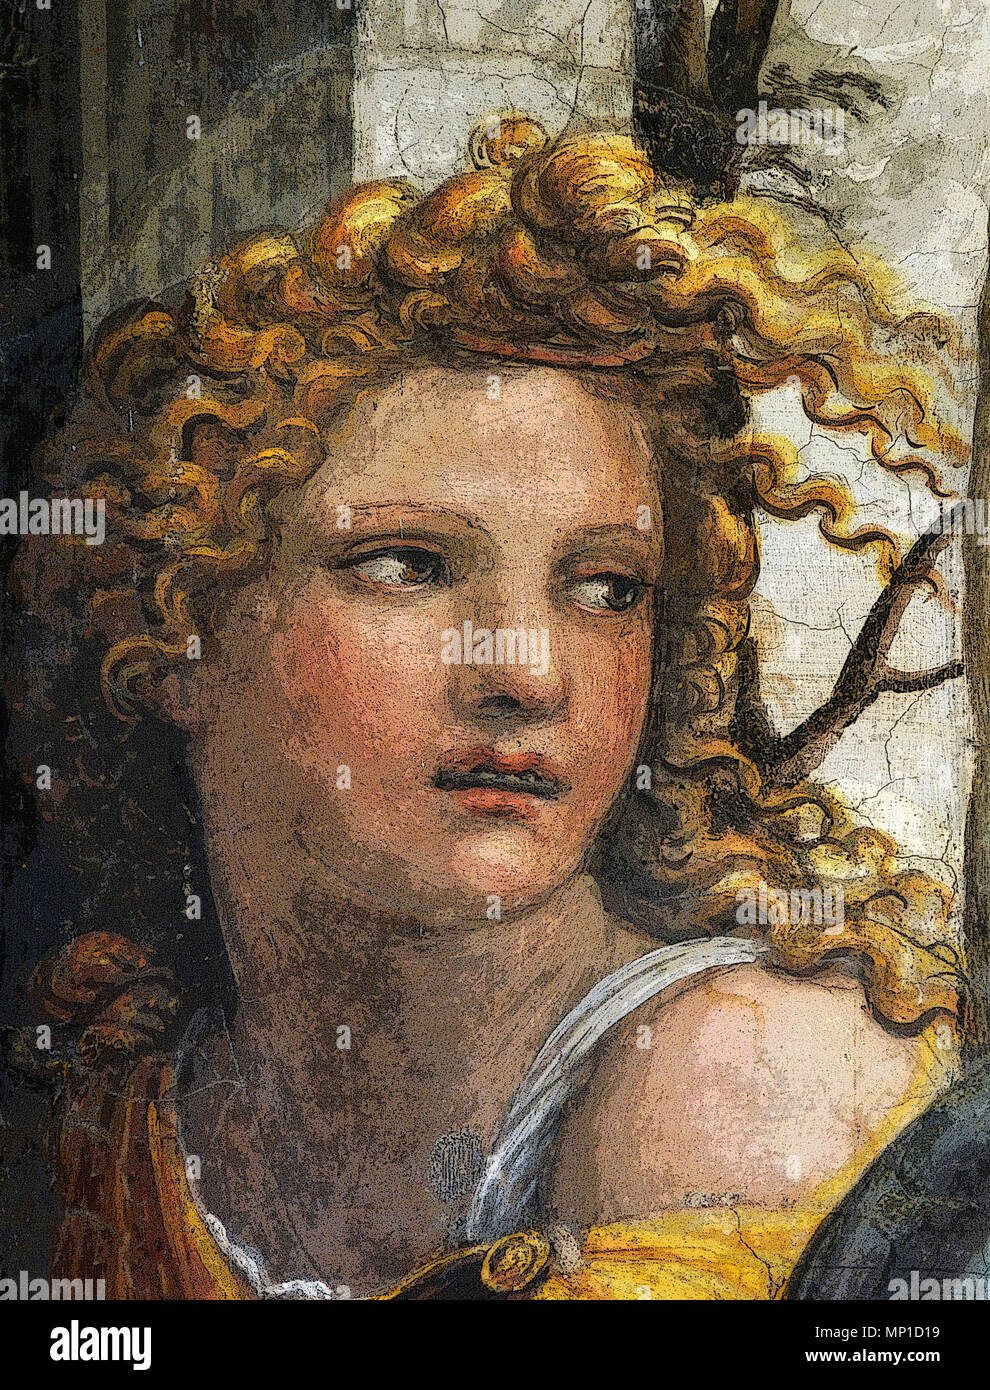 Marriage of Alexander the Great and Roxanne, face of one of the servant women (rendered in PS), by Sodoma, Villa Farnesina, Rome Stock Photo